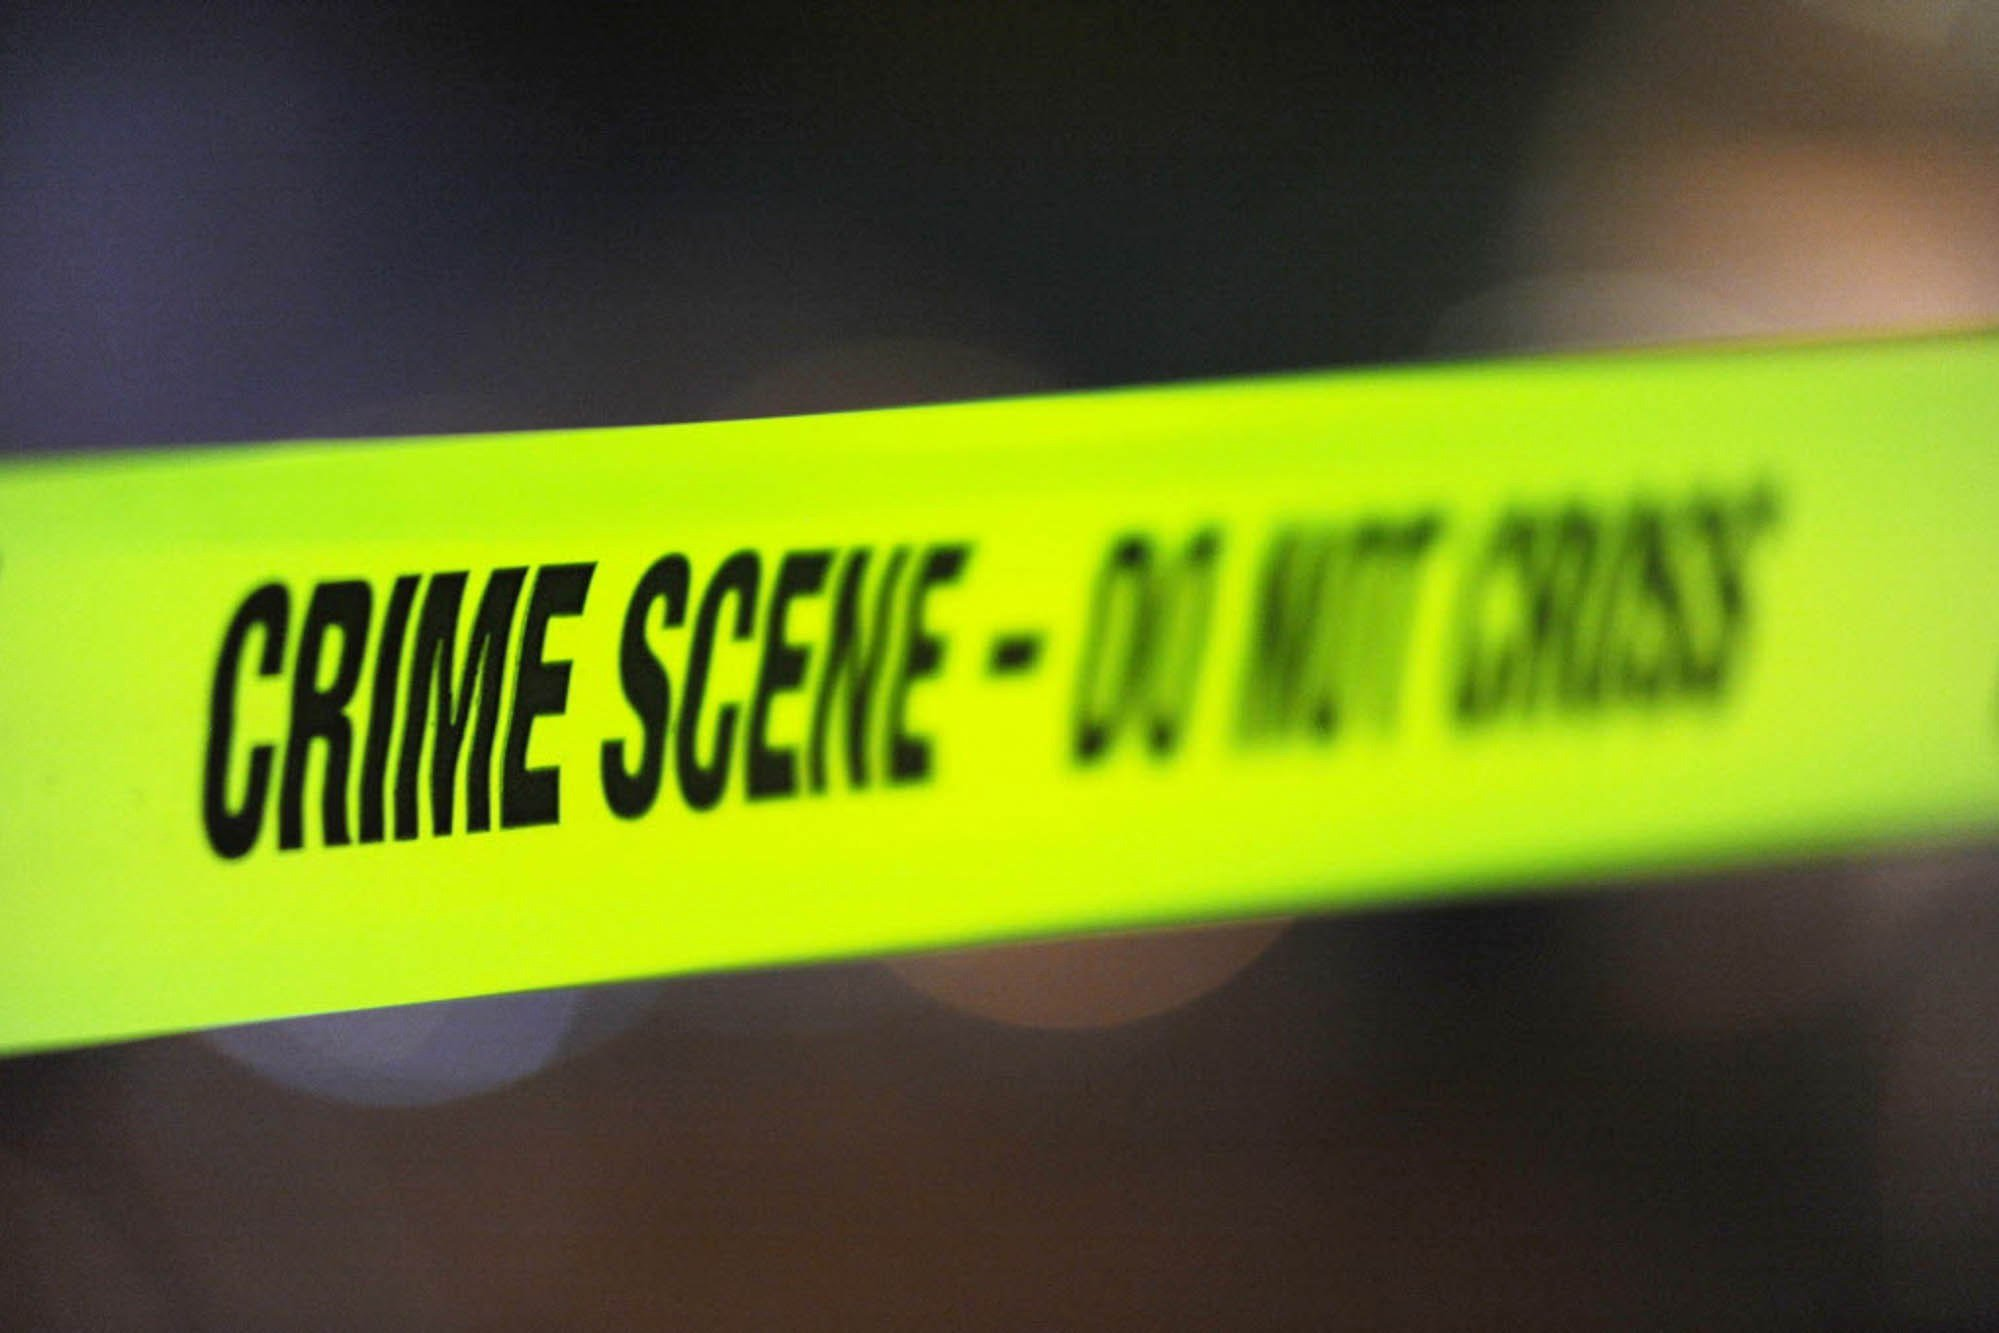 Death of man found with puncture wounds ruled a homicide